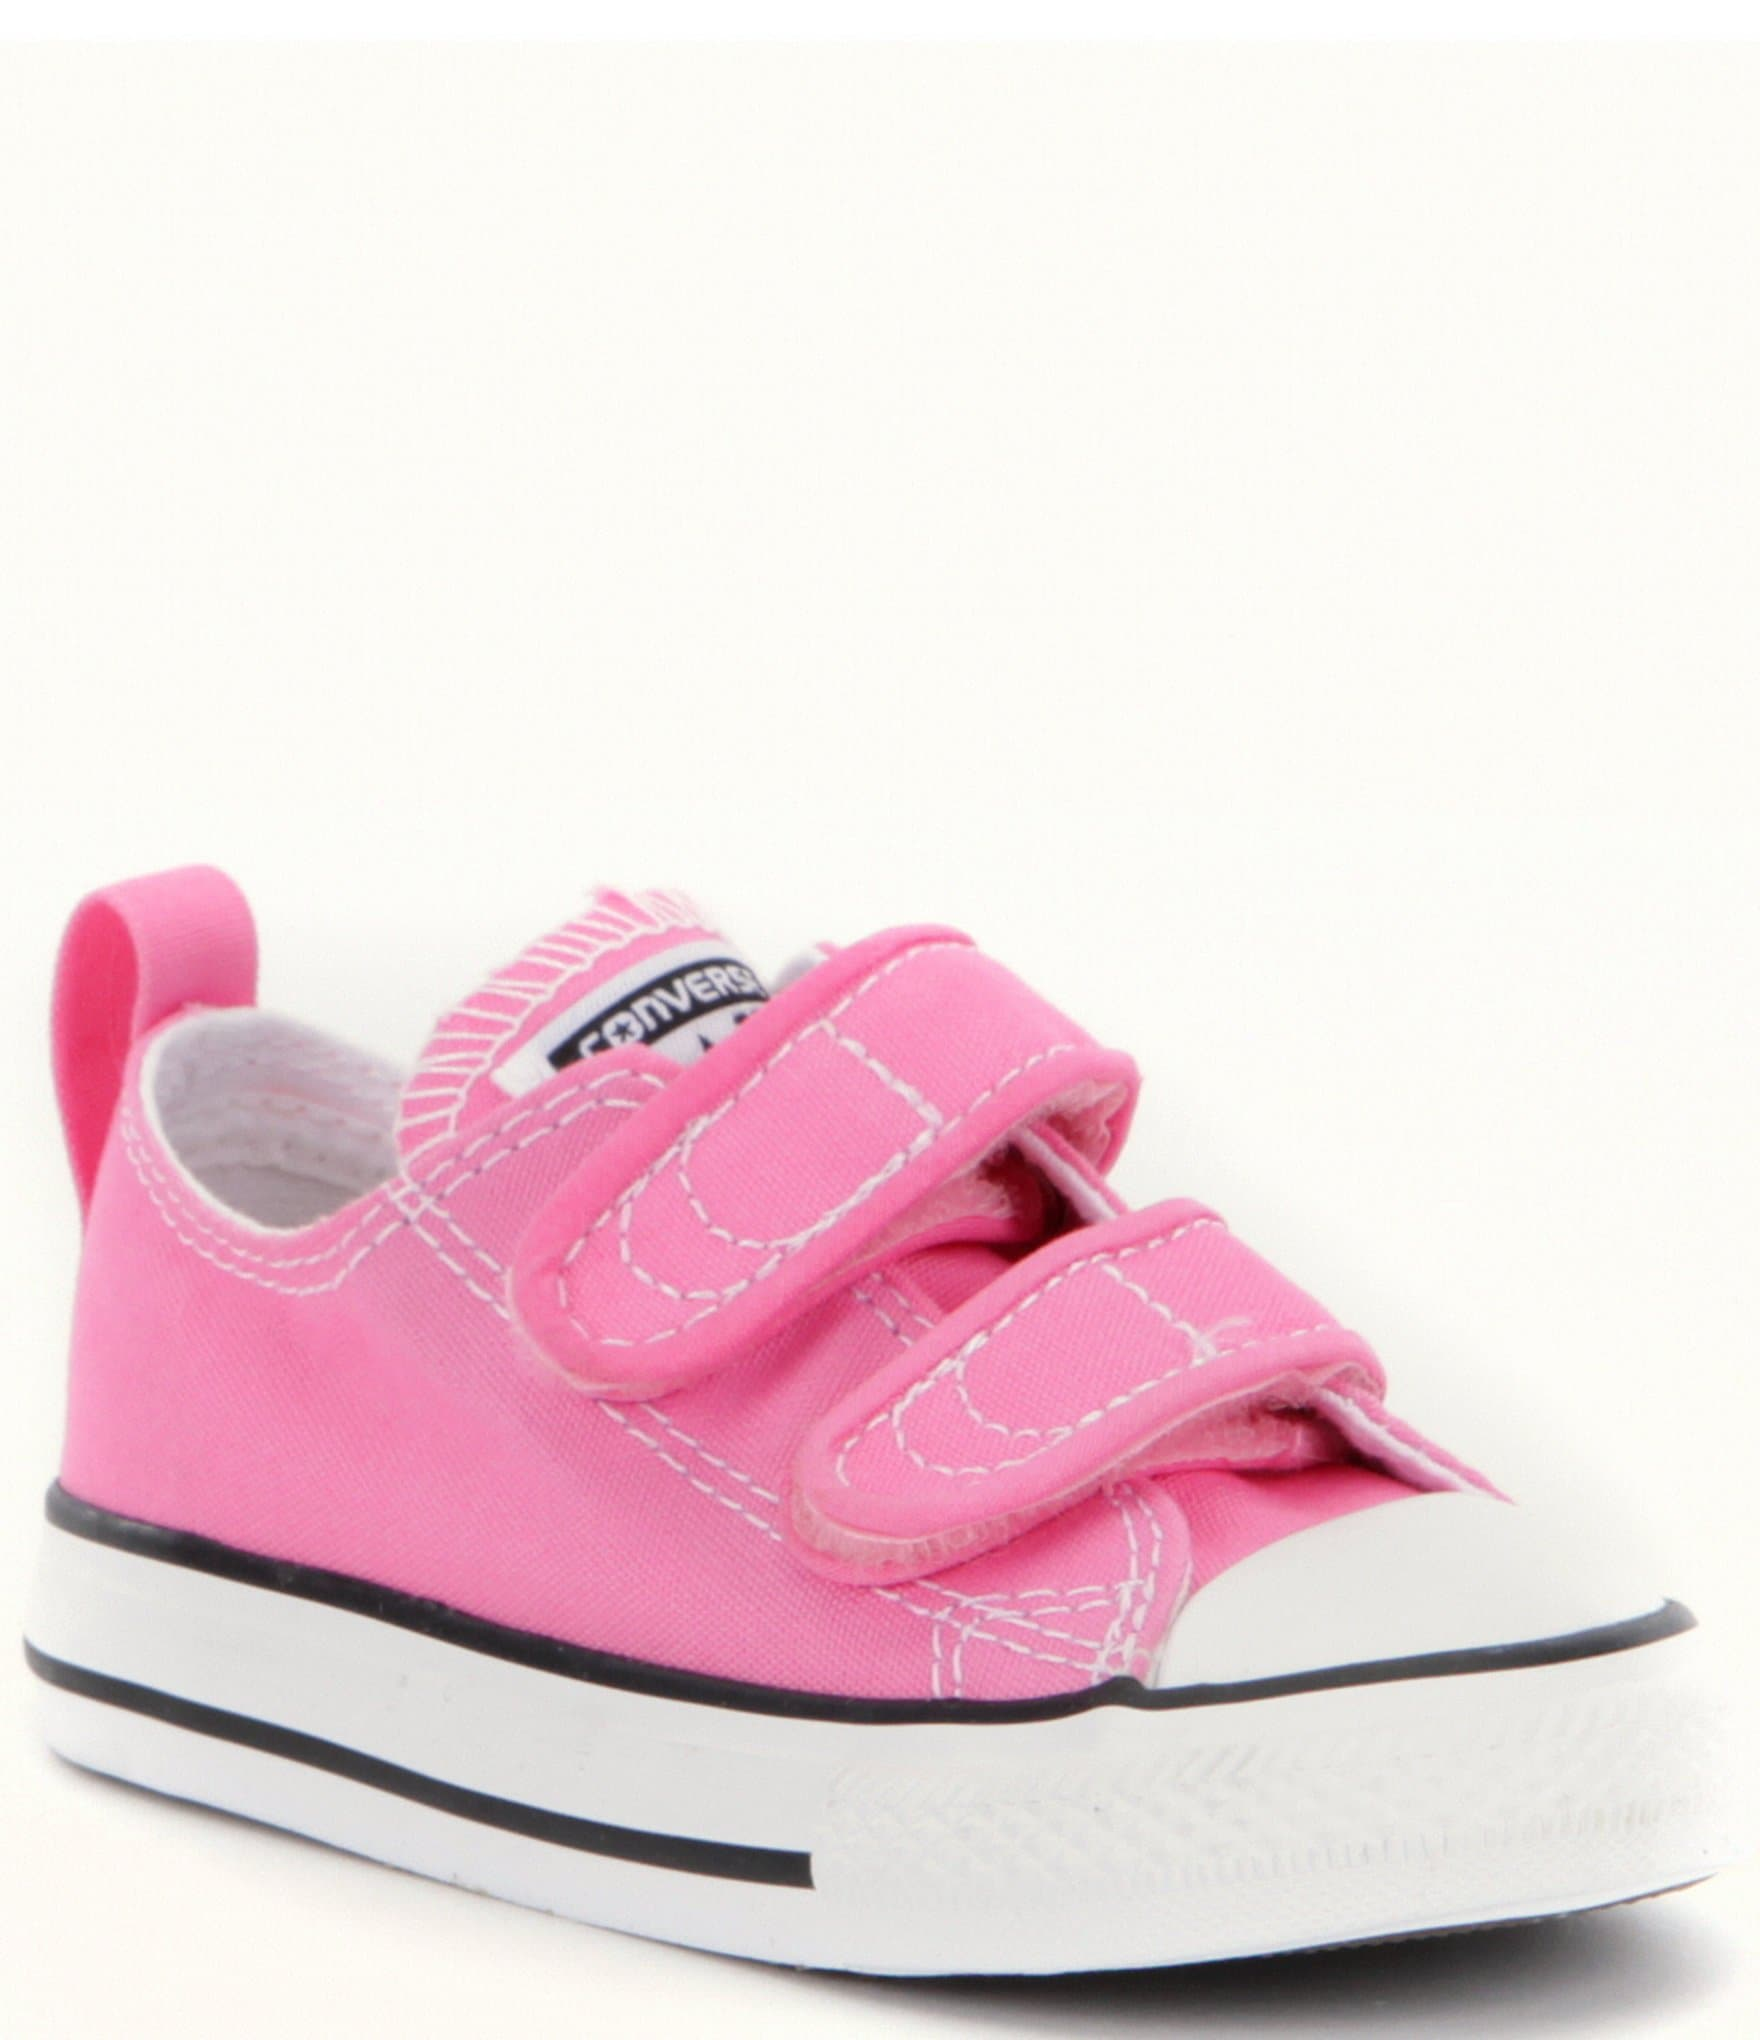 d7aa75b8ee4 Converse Kids  Shoes